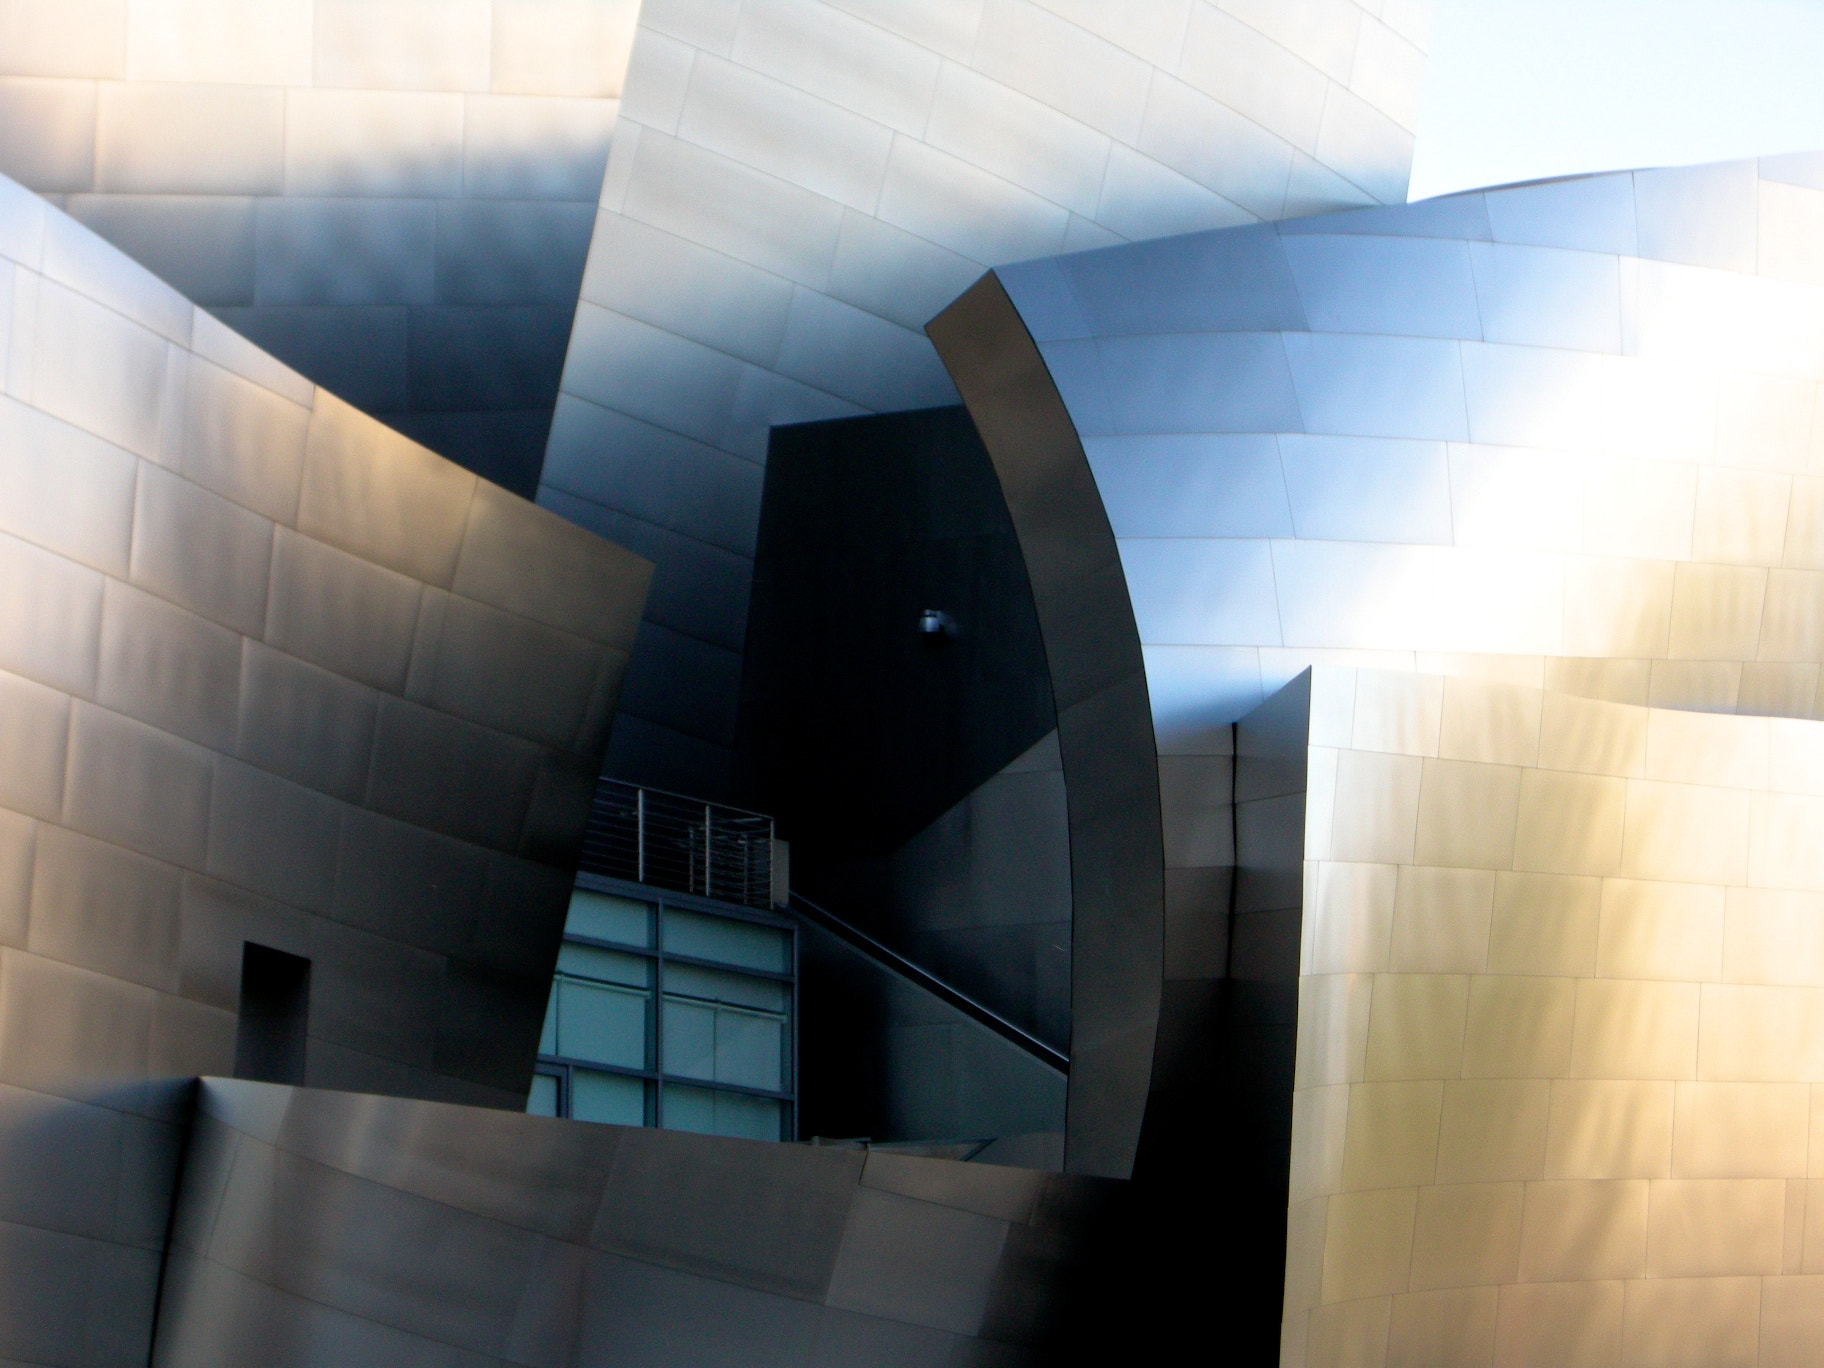 Photograph LA Disney Concert hall by Guido Merkelbach on 500px